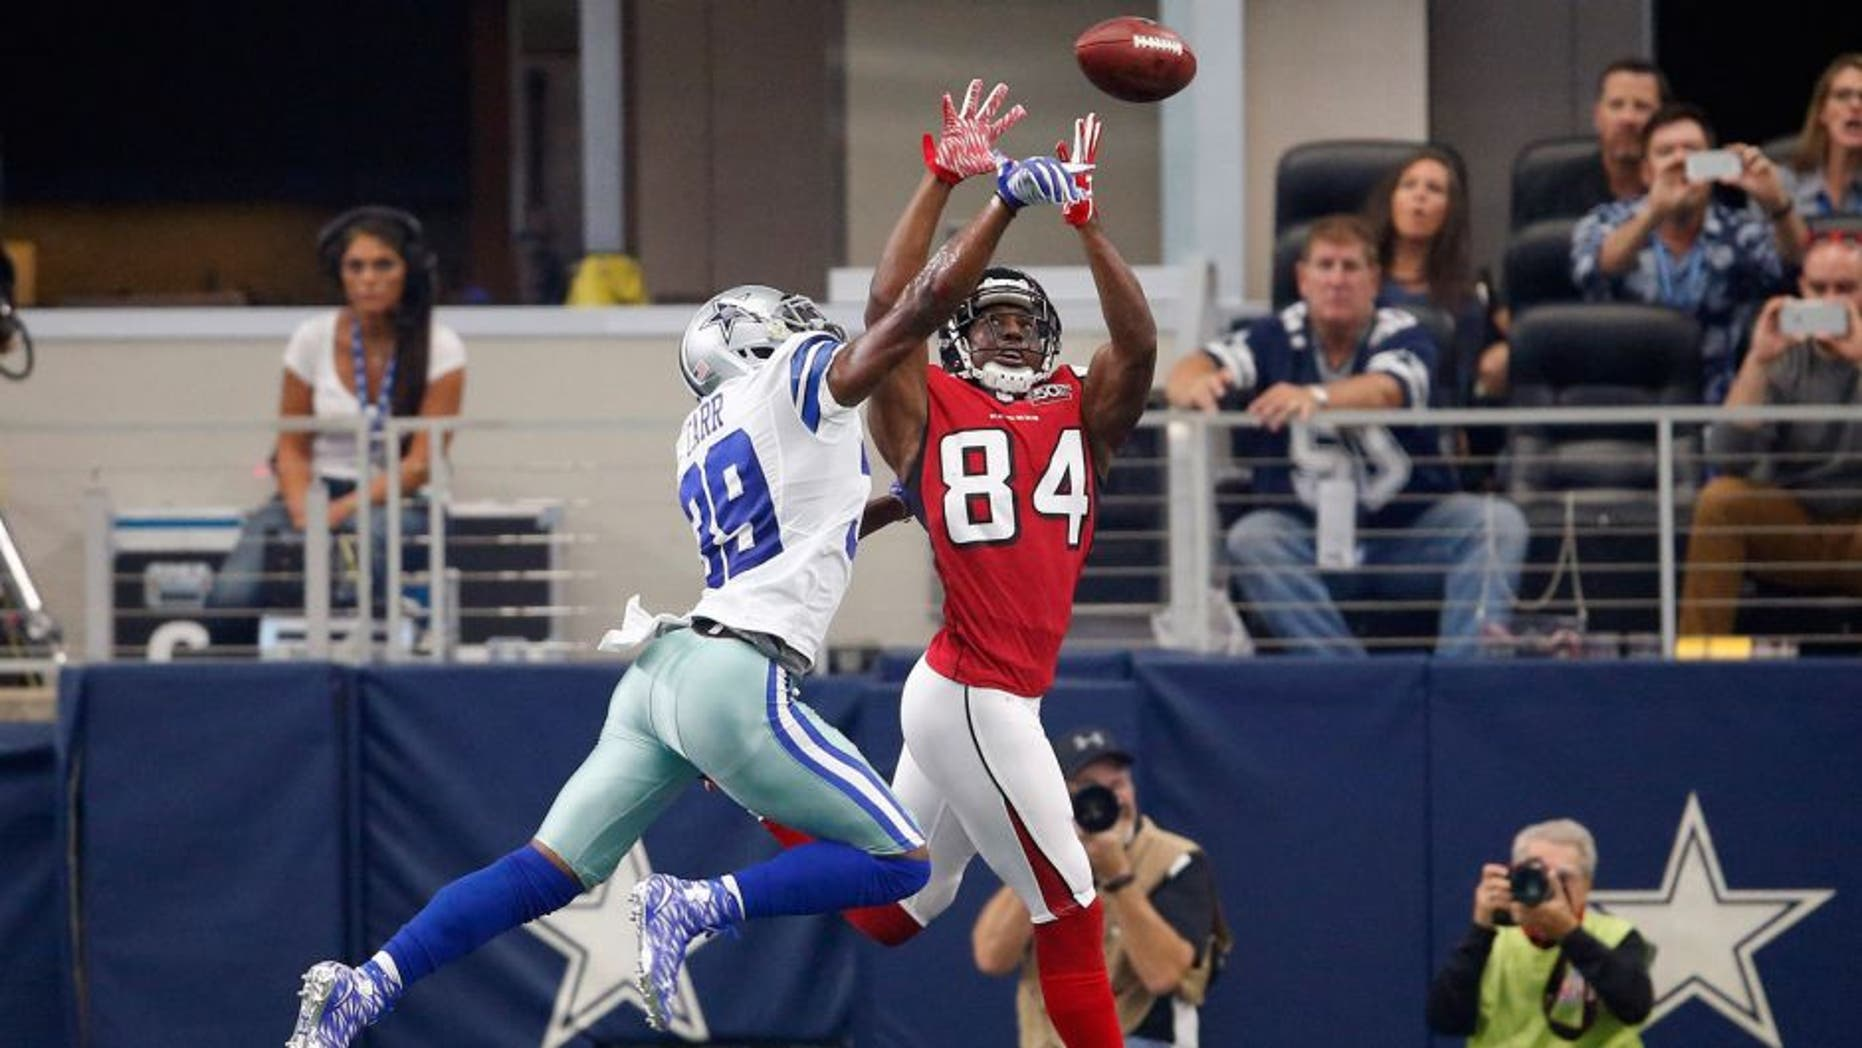 Sep 27, 2015; Arlington, TX, USA; Dallas Cowboys cornerback Brandon Carr (39) breaks up a pass in the end zone against Atlanta Falcons receiver Roddy White (84) in the first quarter at AT&T Stadium. Mandatory Credit: Matthew Emmons-USA TODAY Sports